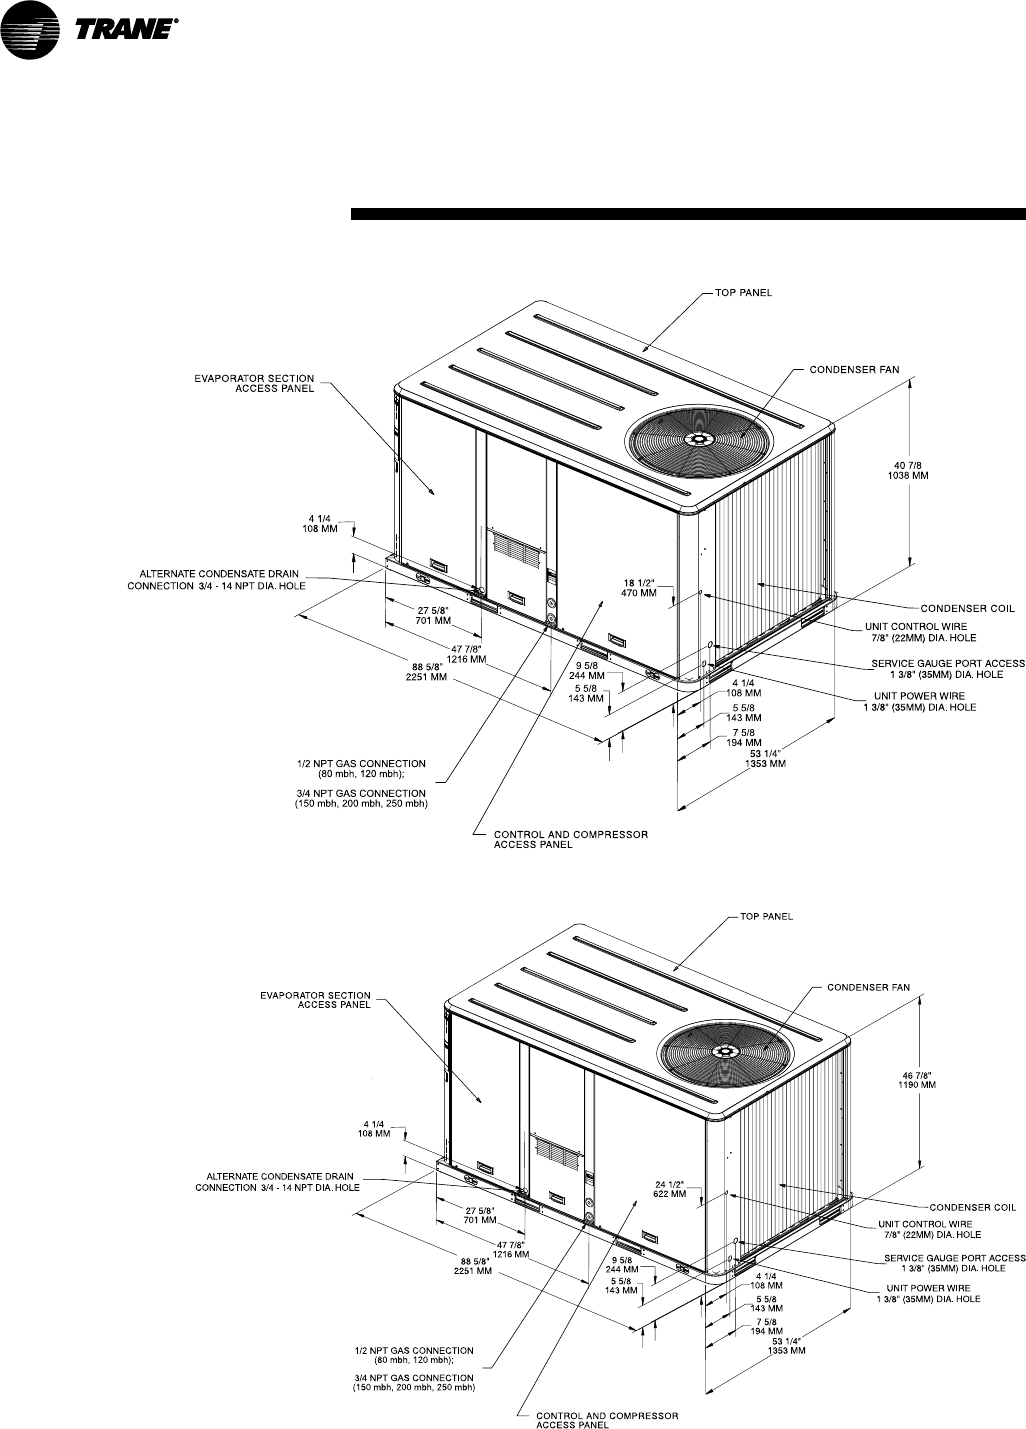 Page 48 of Trane Air Conditioner YSC060 120 User Guide